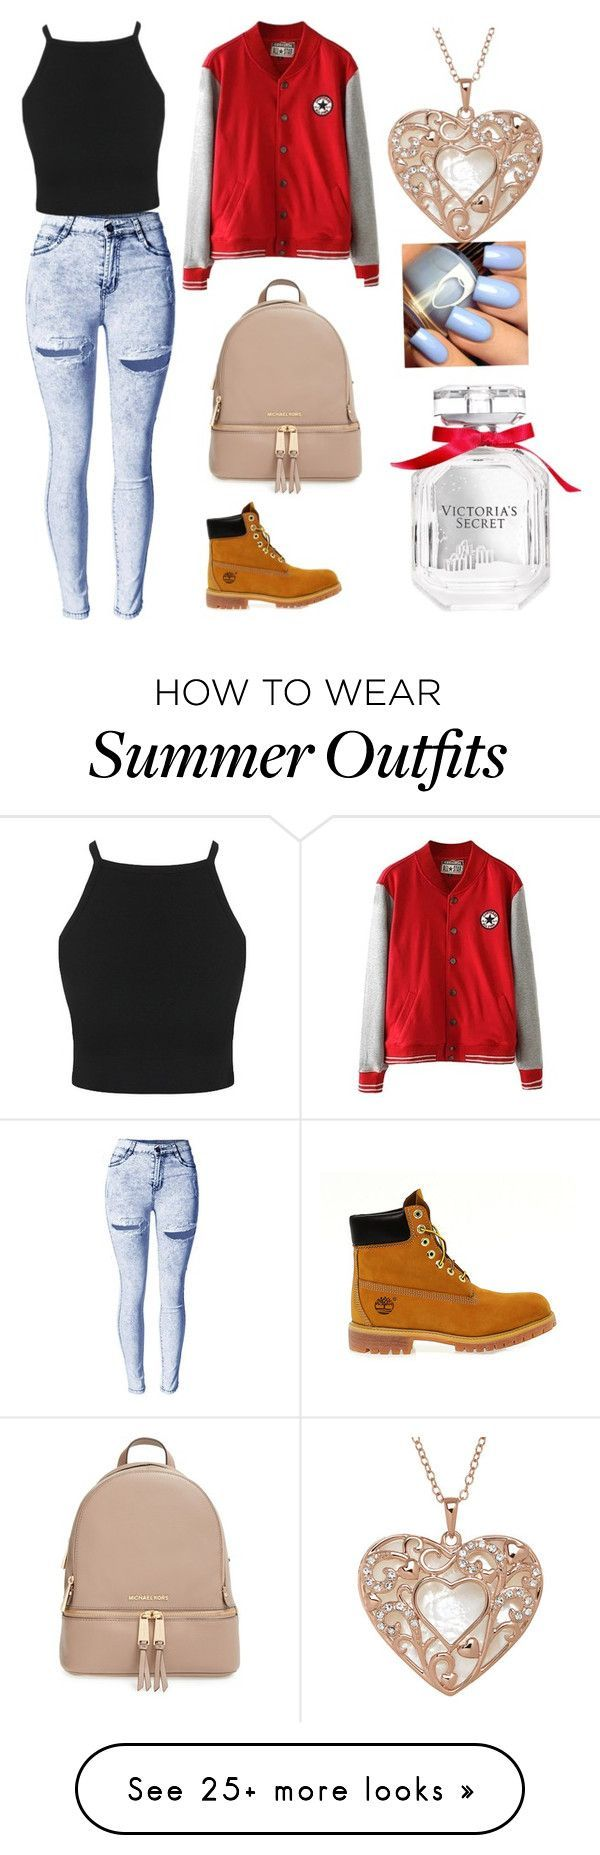 Total KC outfit by areezachohan on Polyvore featuring MICHAEL Michael Kors, Timberland and Victorias Secret